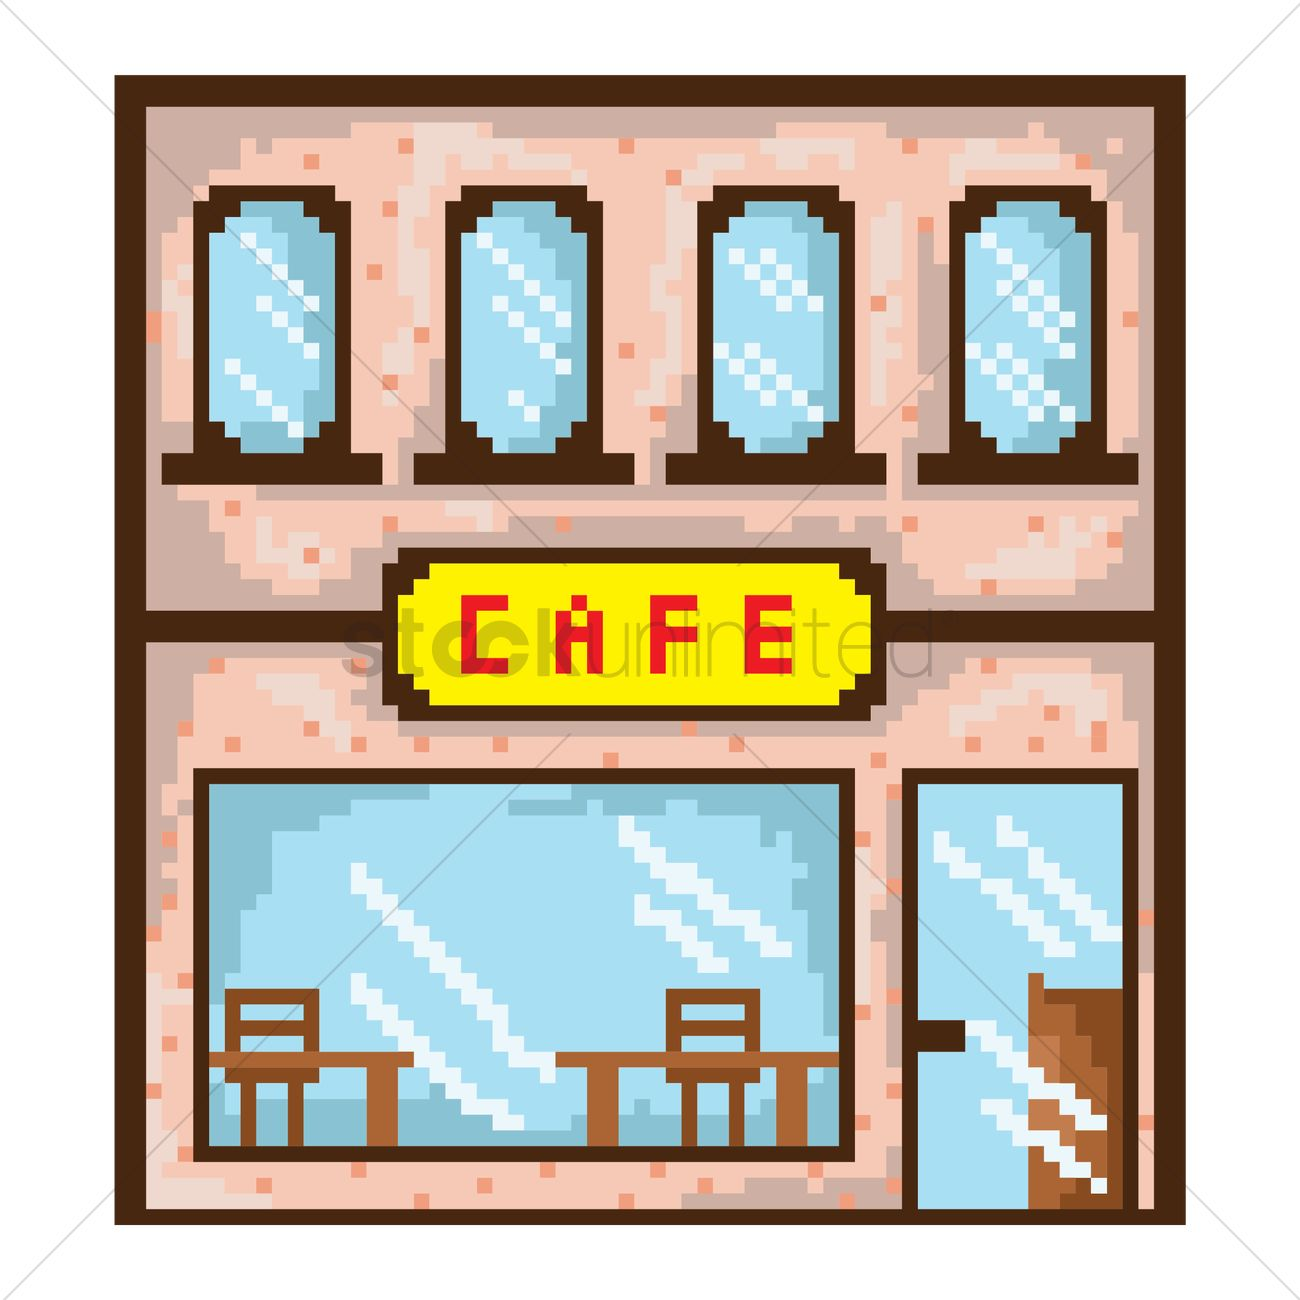 Pixel Art Cafe Vector Image 1958380 Stockunlimited